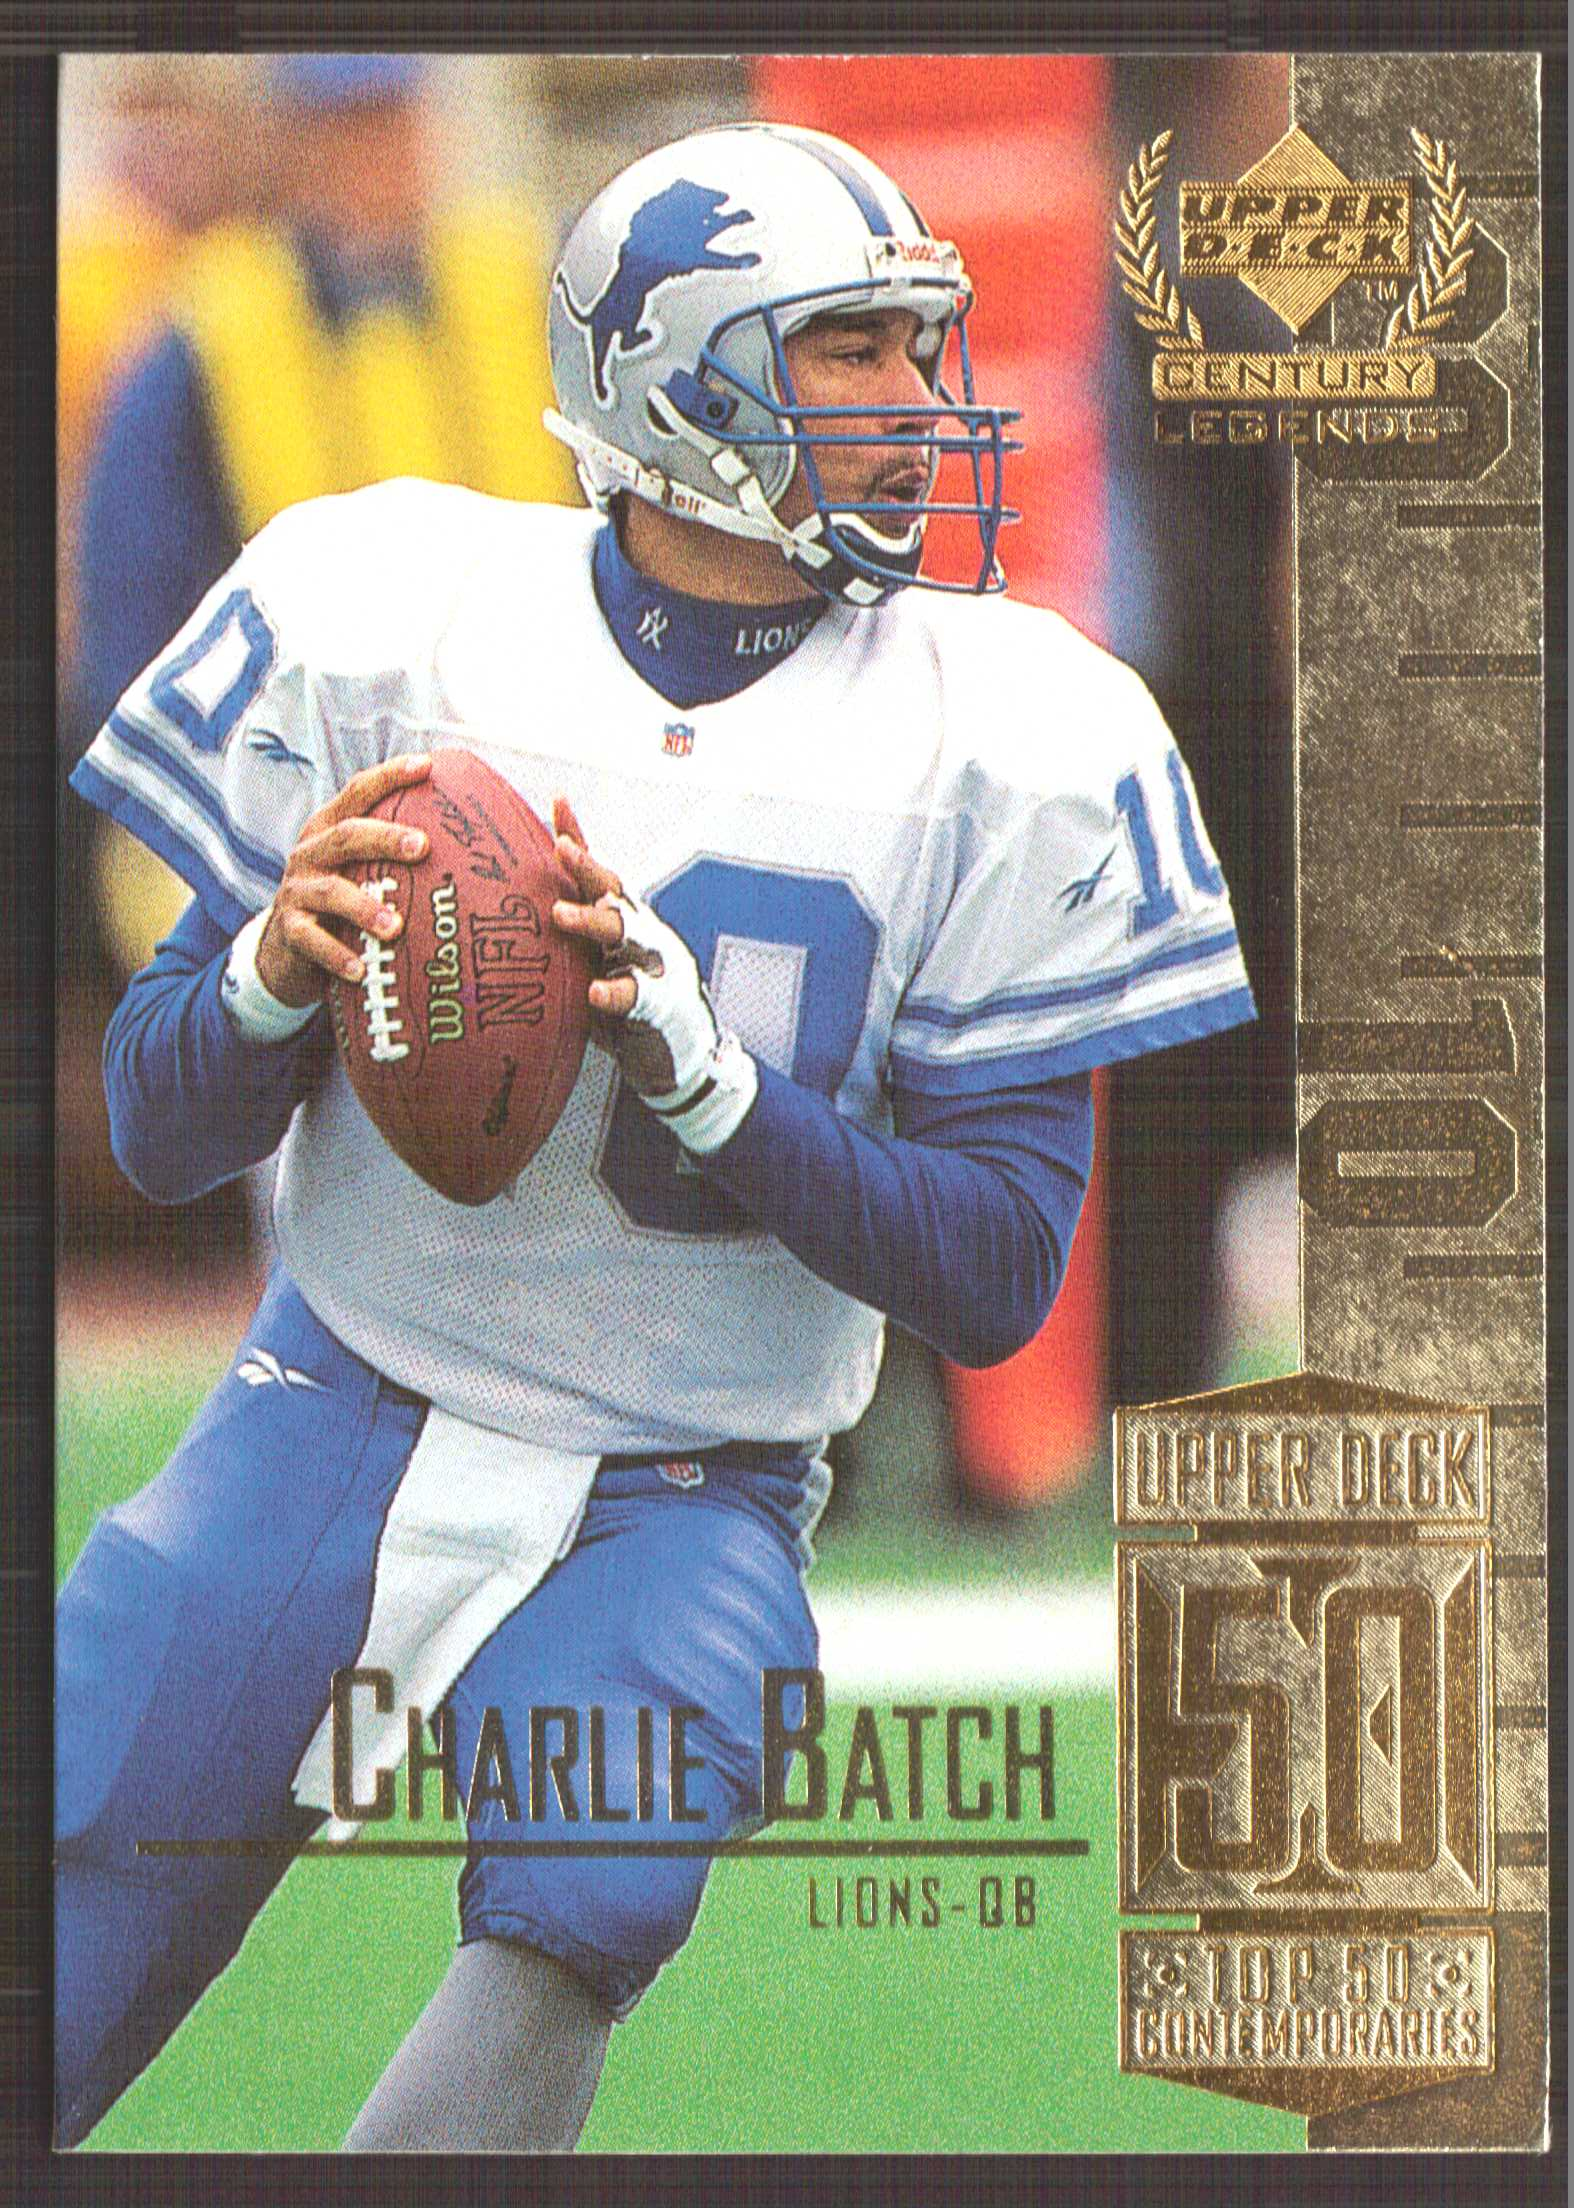 1999 Upper Deck Century Legends #100 Charlie Batch